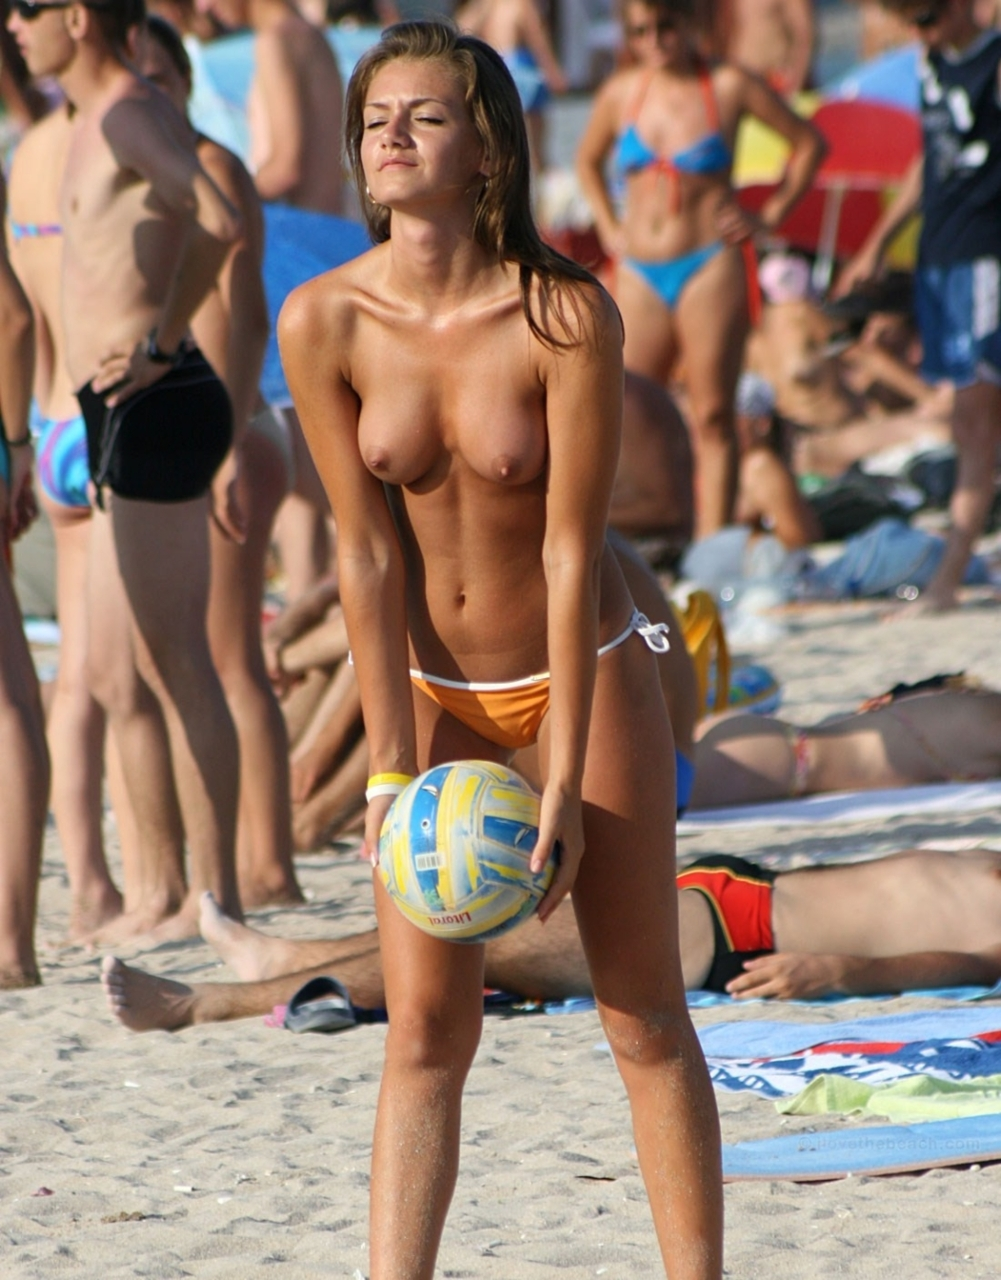 topless beach volleyball game